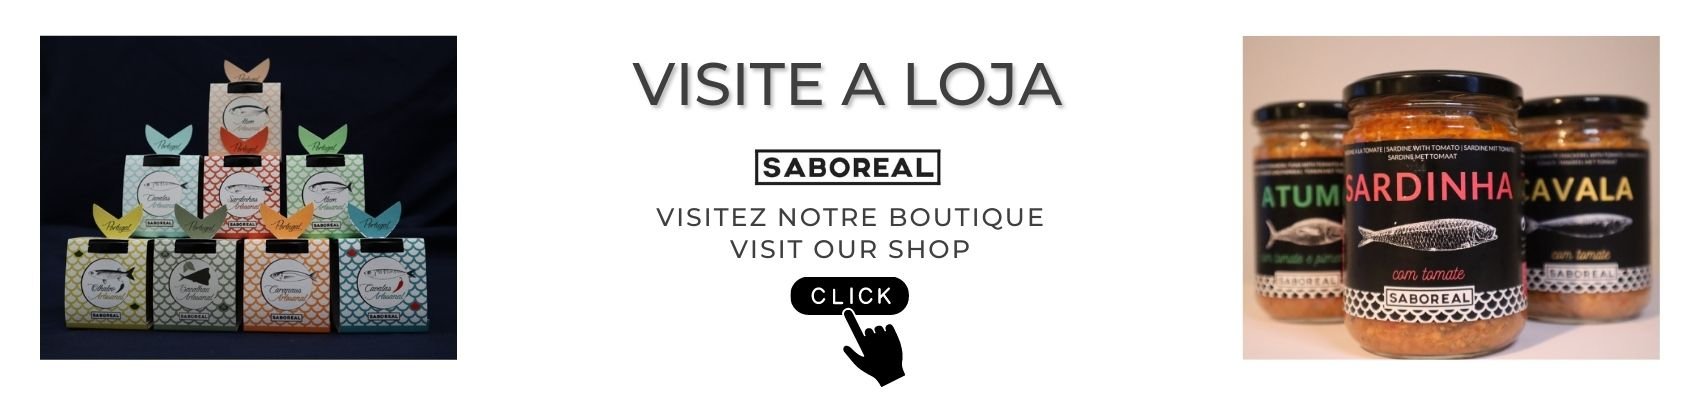 LOJA SHOP SABOREAL - Visit our shop to know our preserves and order.